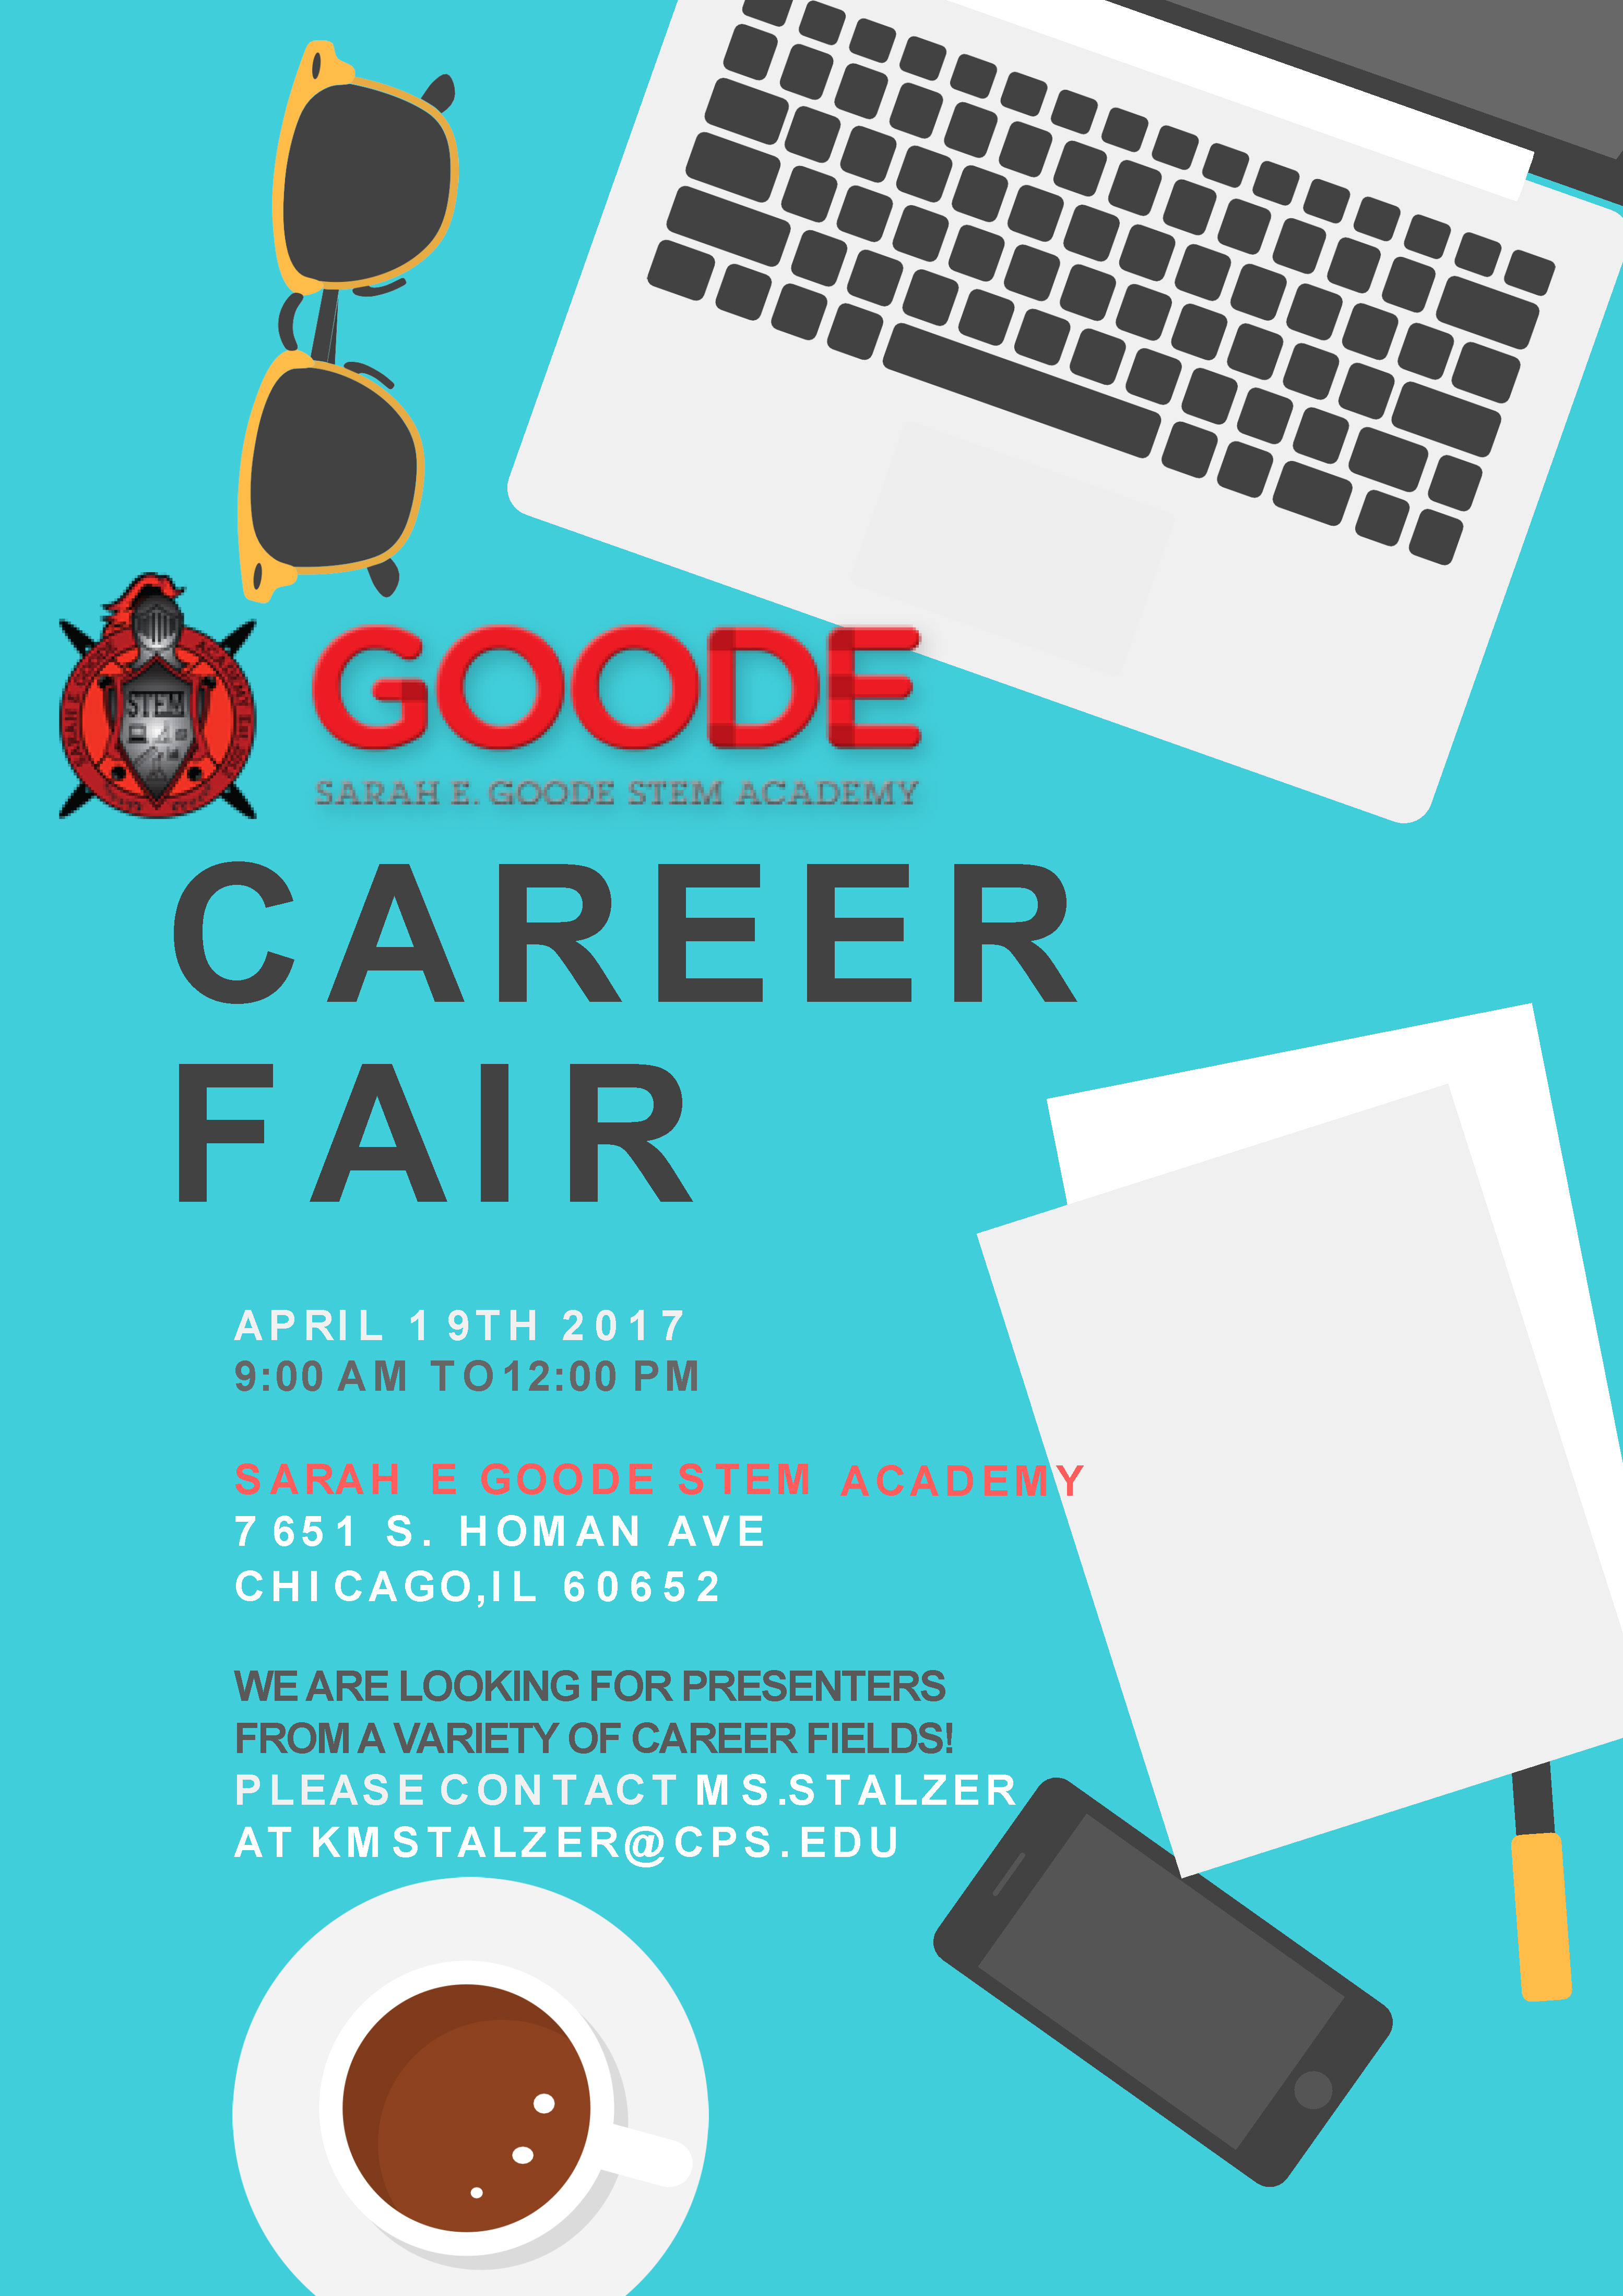 Goode STEM Academy Career Fair Presenter Sign-Up​